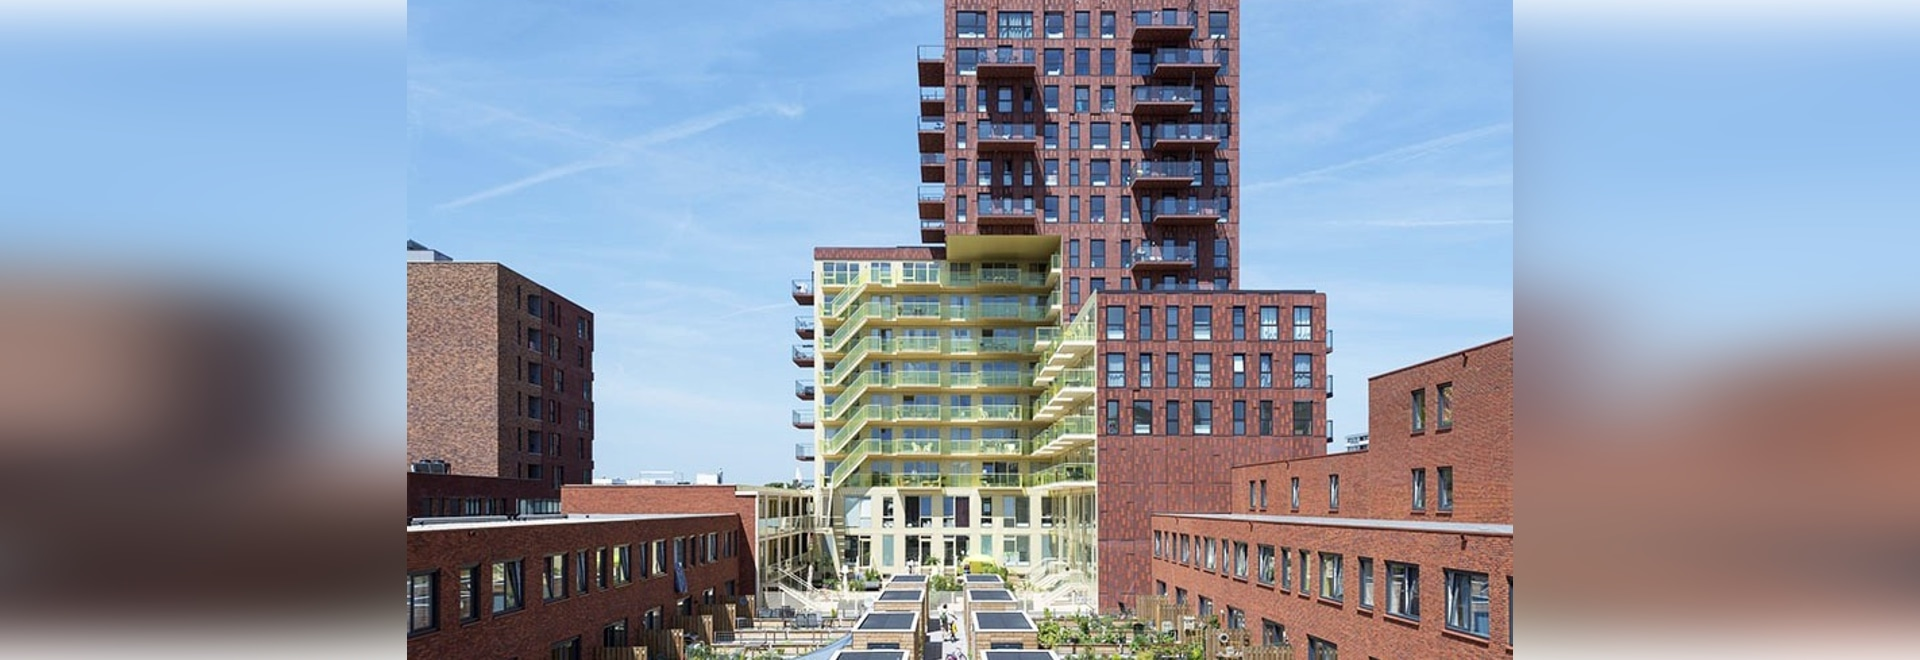 mei architects inscribes tower in utrecht with poetic verse about life in the city